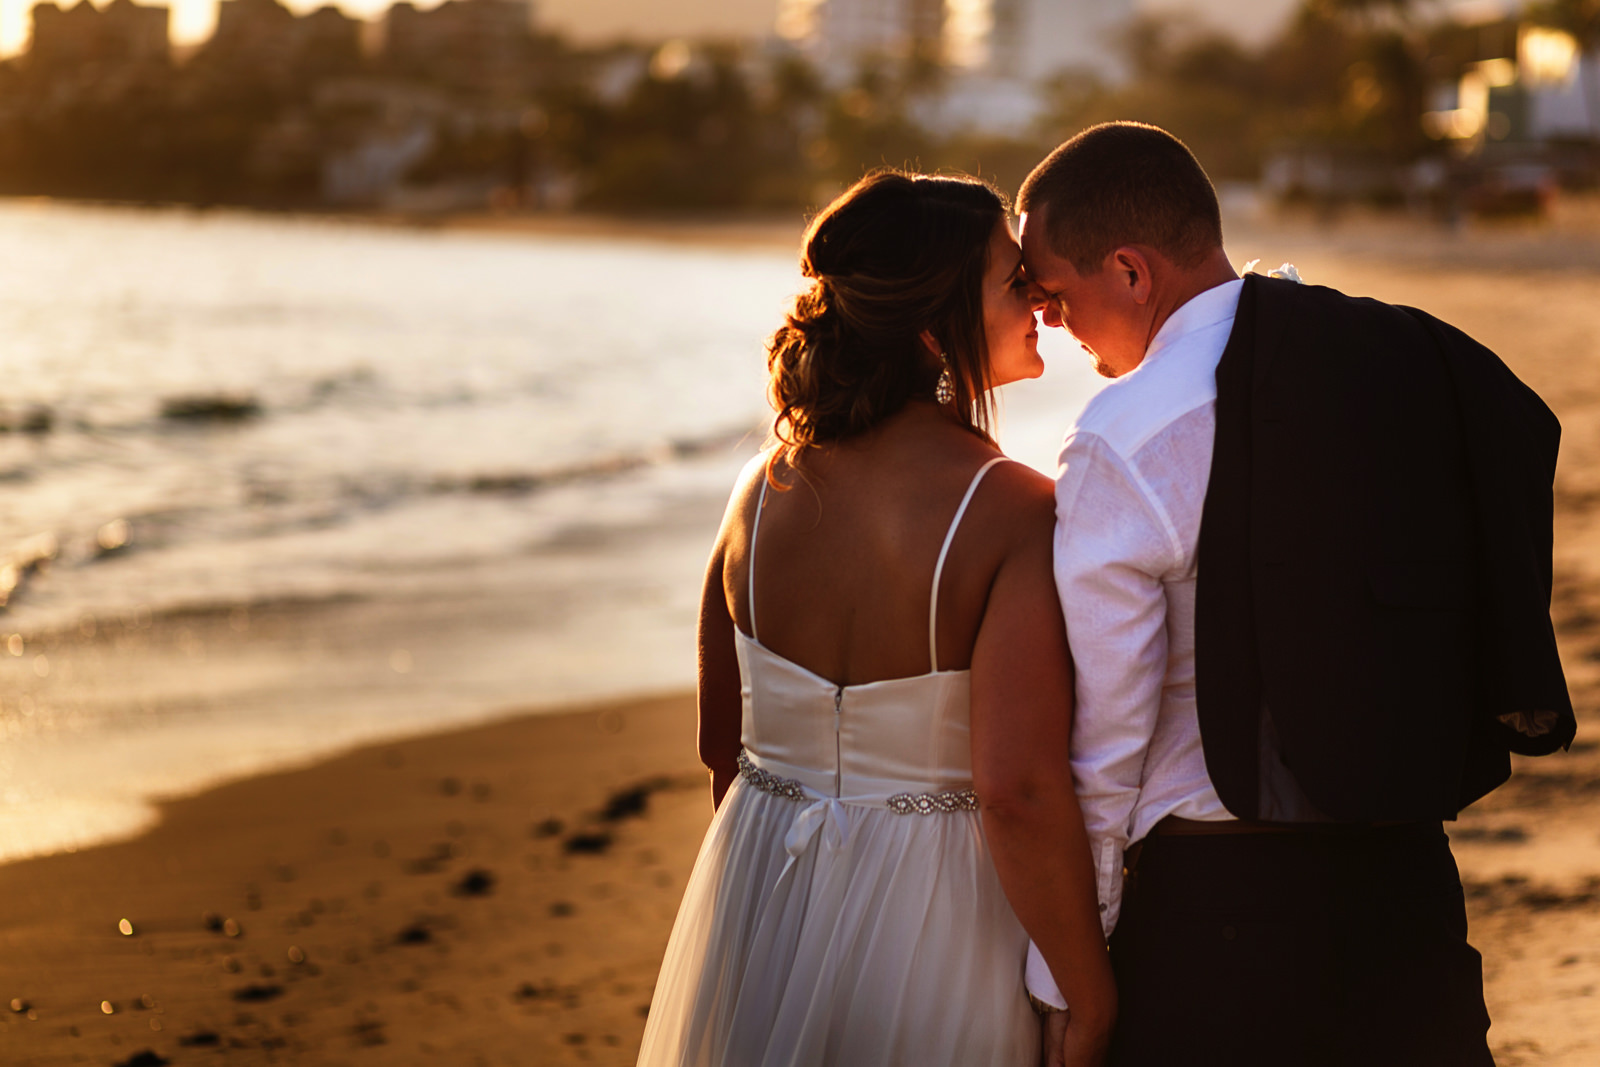 Bride and groom portrait with backlight from the sun